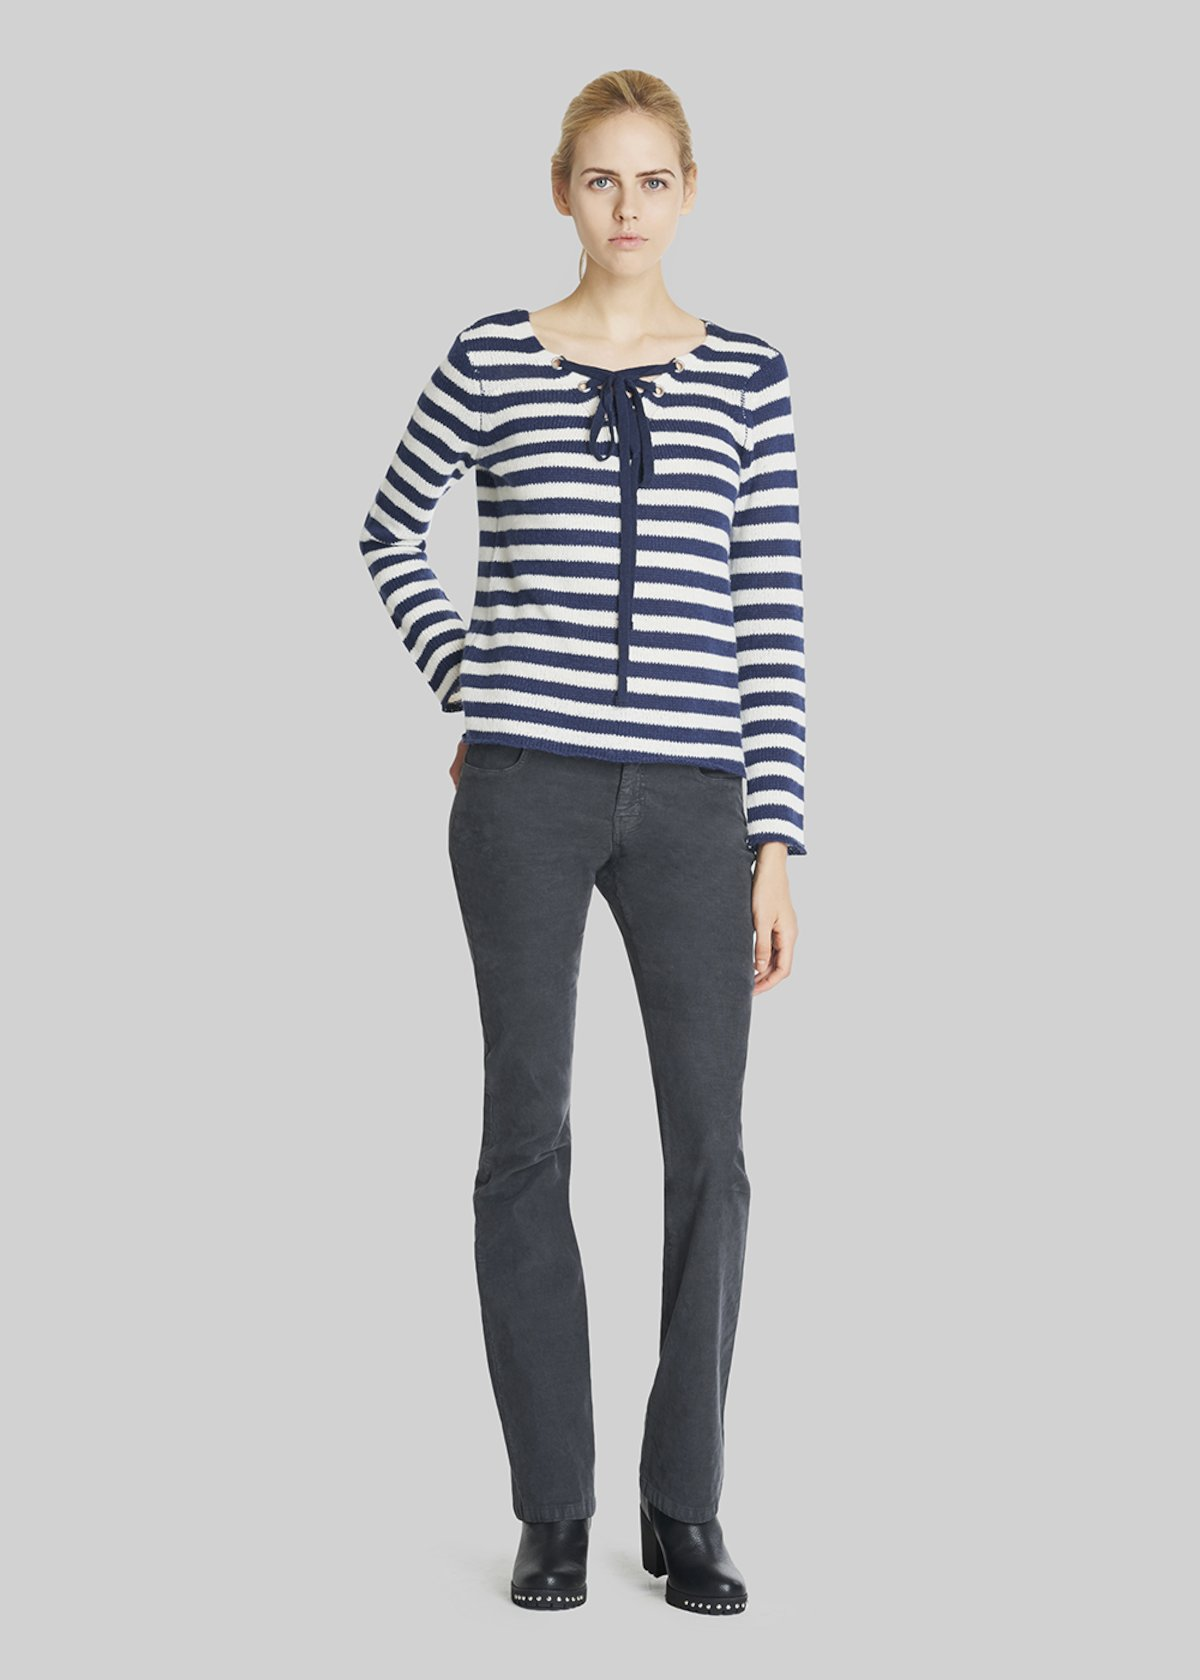 Morbid sweater with criss cross at the neck and bicolour stripes - Medium Blue / White Stripes - Woman - Category image